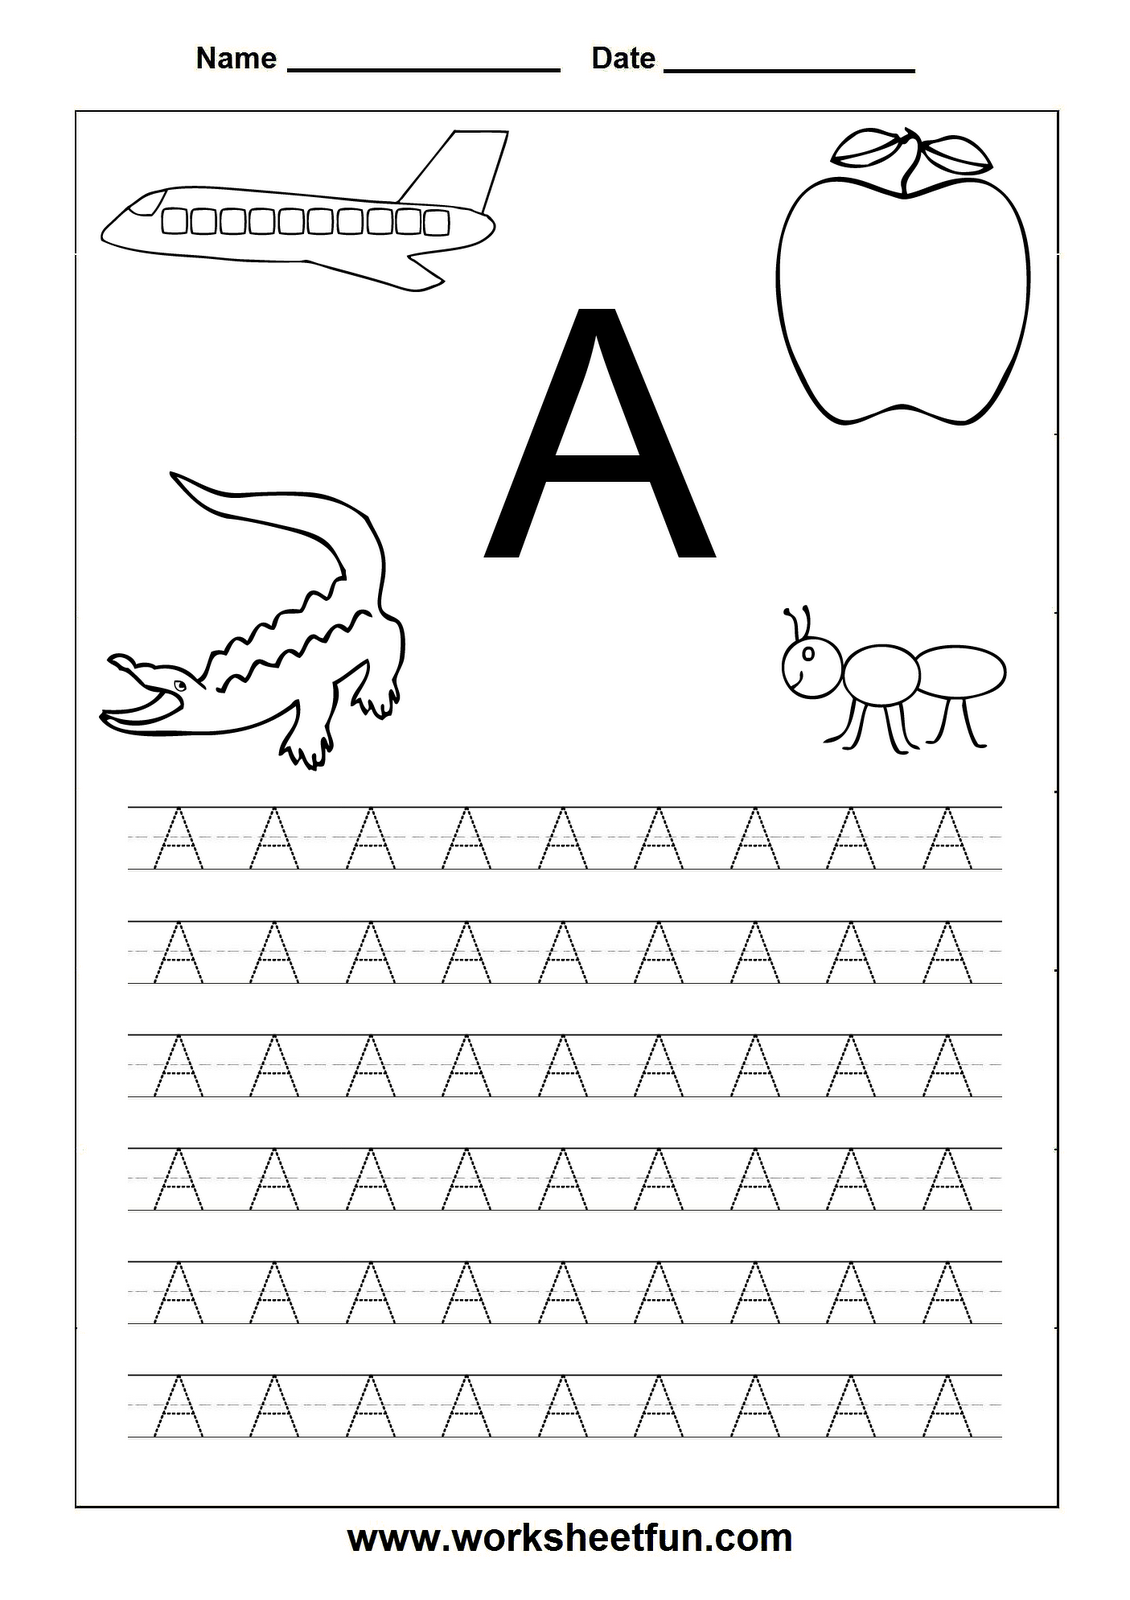 Letter Worksheets For Kindergarten Printable Letters – Tracing Letter a Worksheet